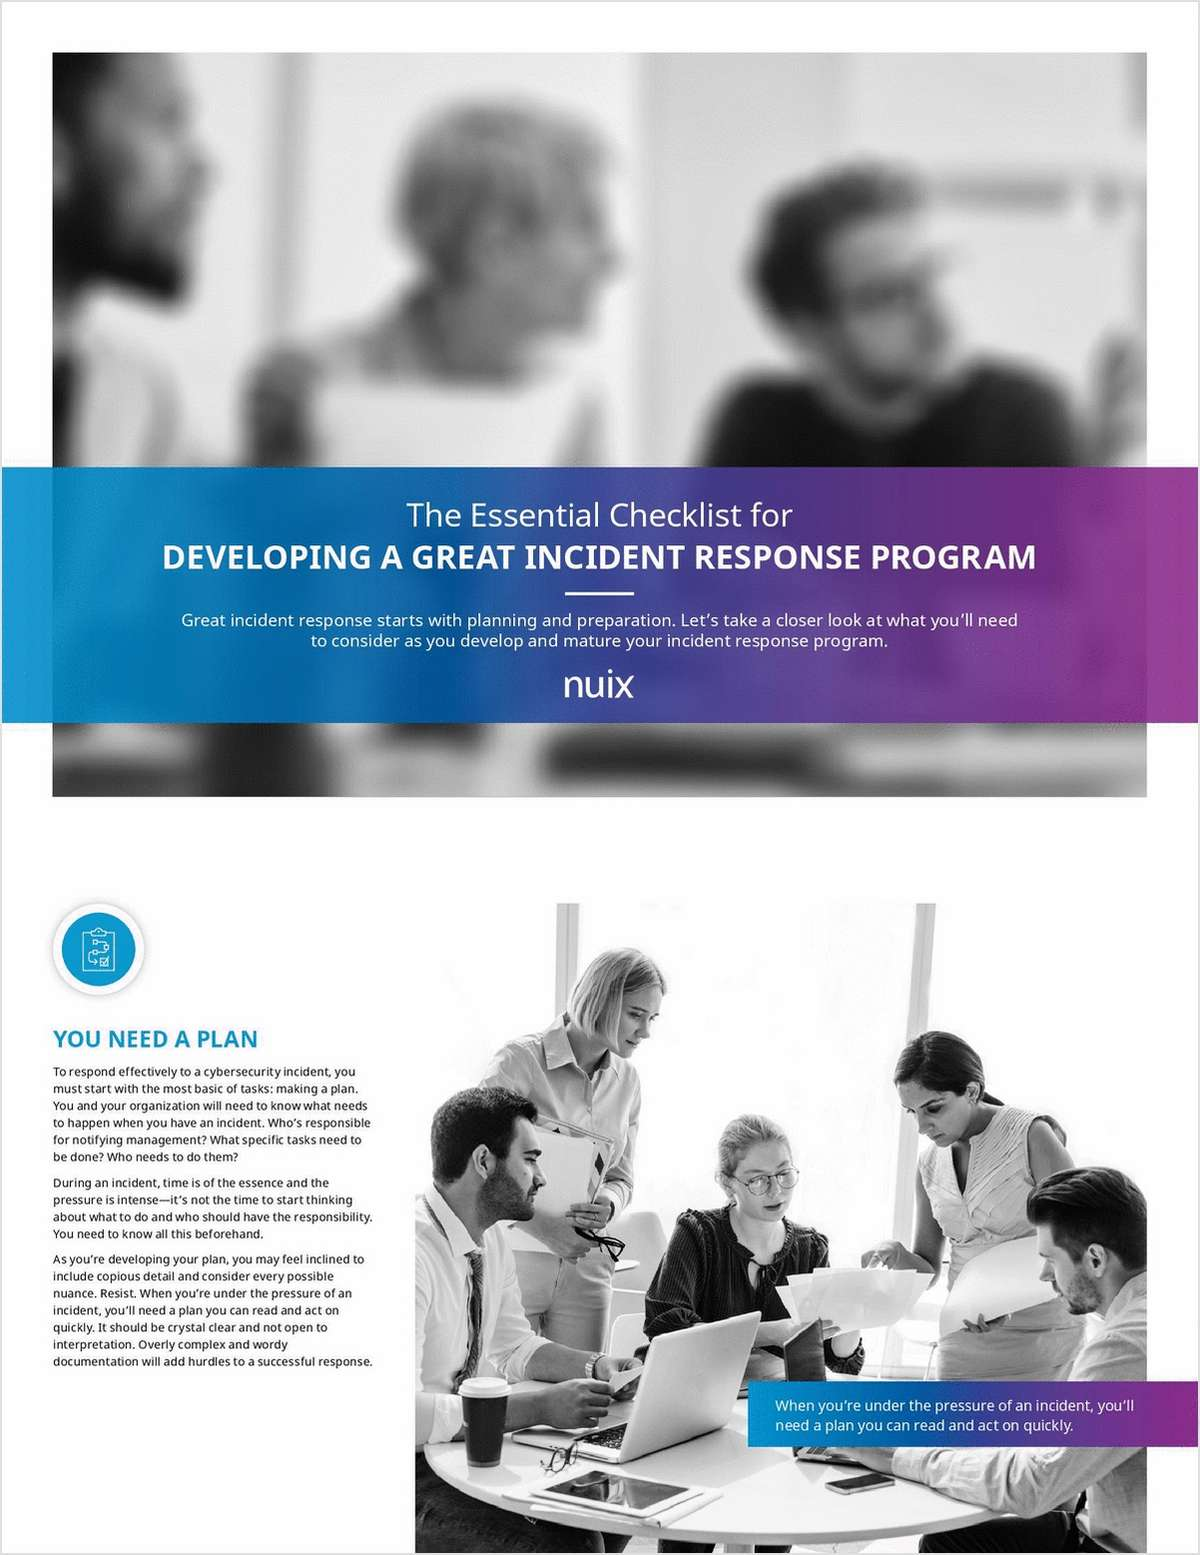 The Essential Checklist for Developing a Great Incident Response Program